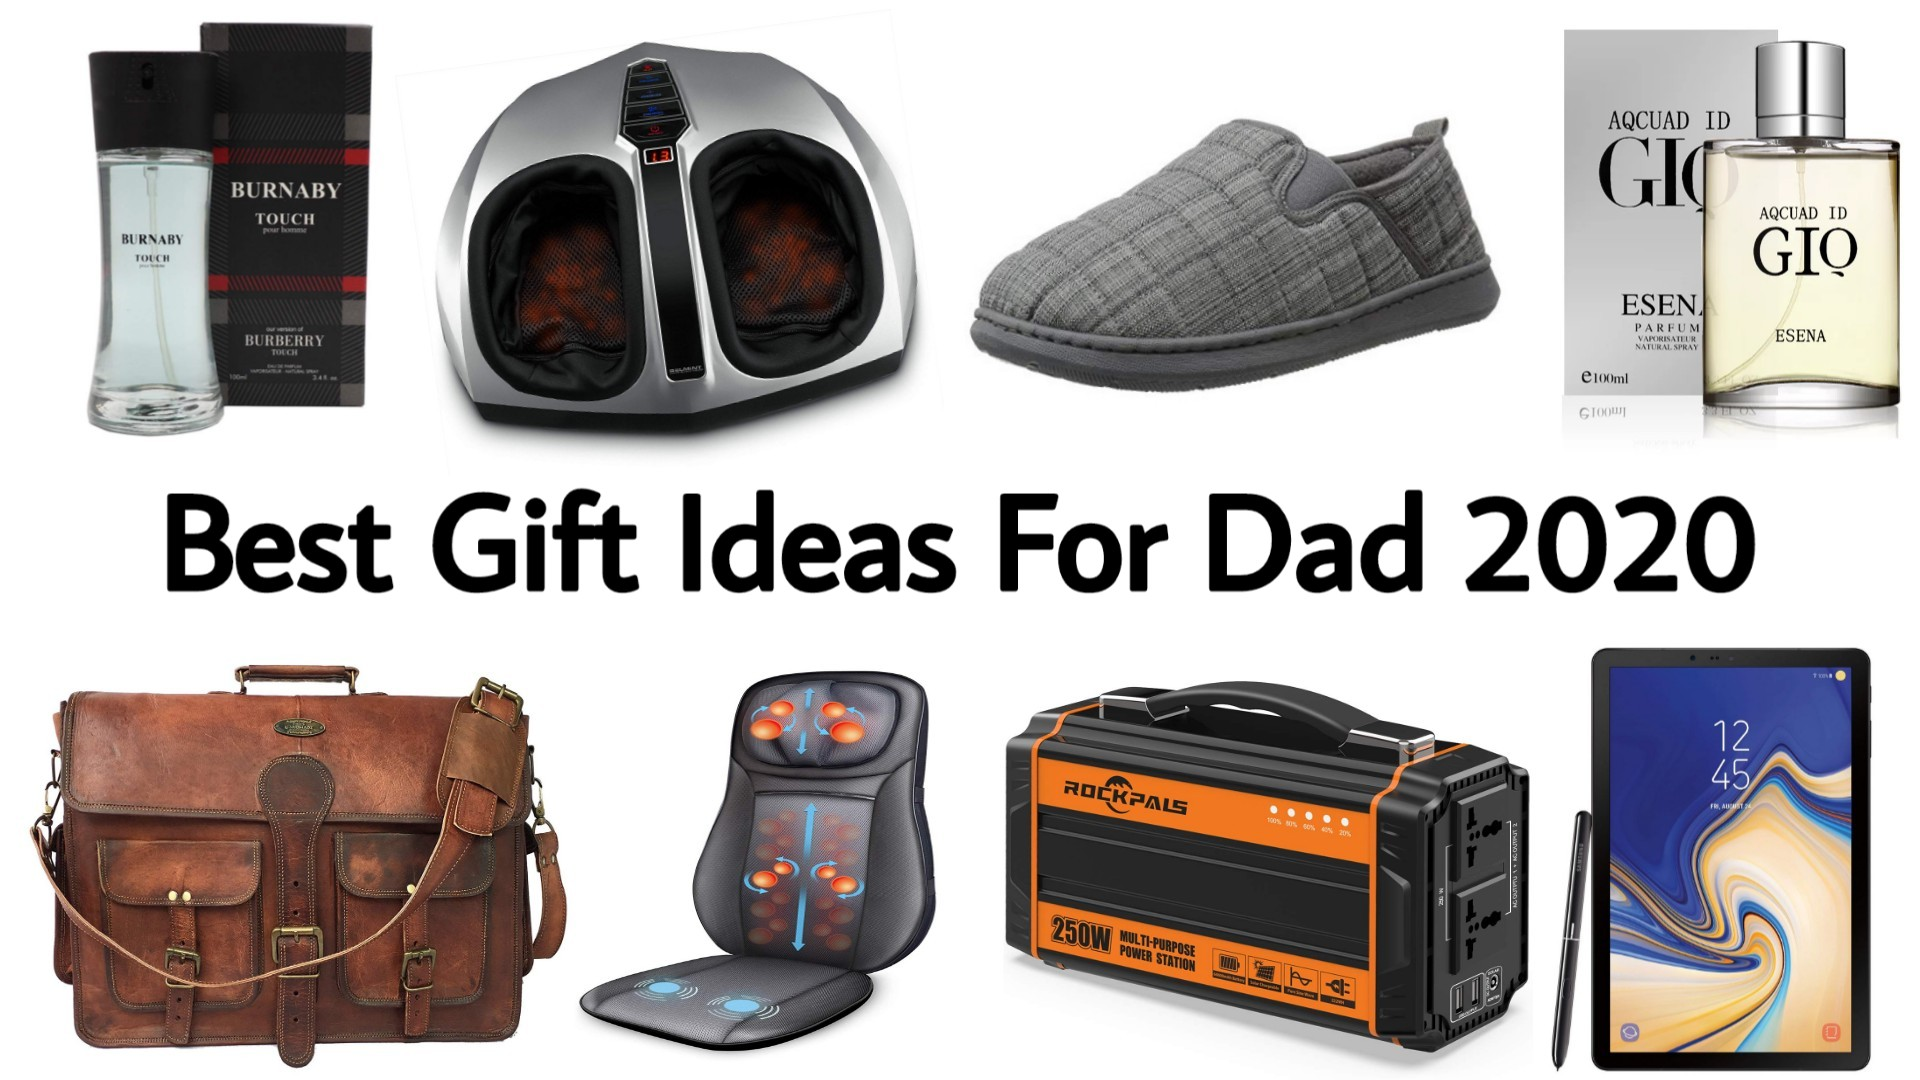 Dad Christmas 2020 Best Christmas Gifts for Father 2020 | Birthday Gift Ideas for Dad